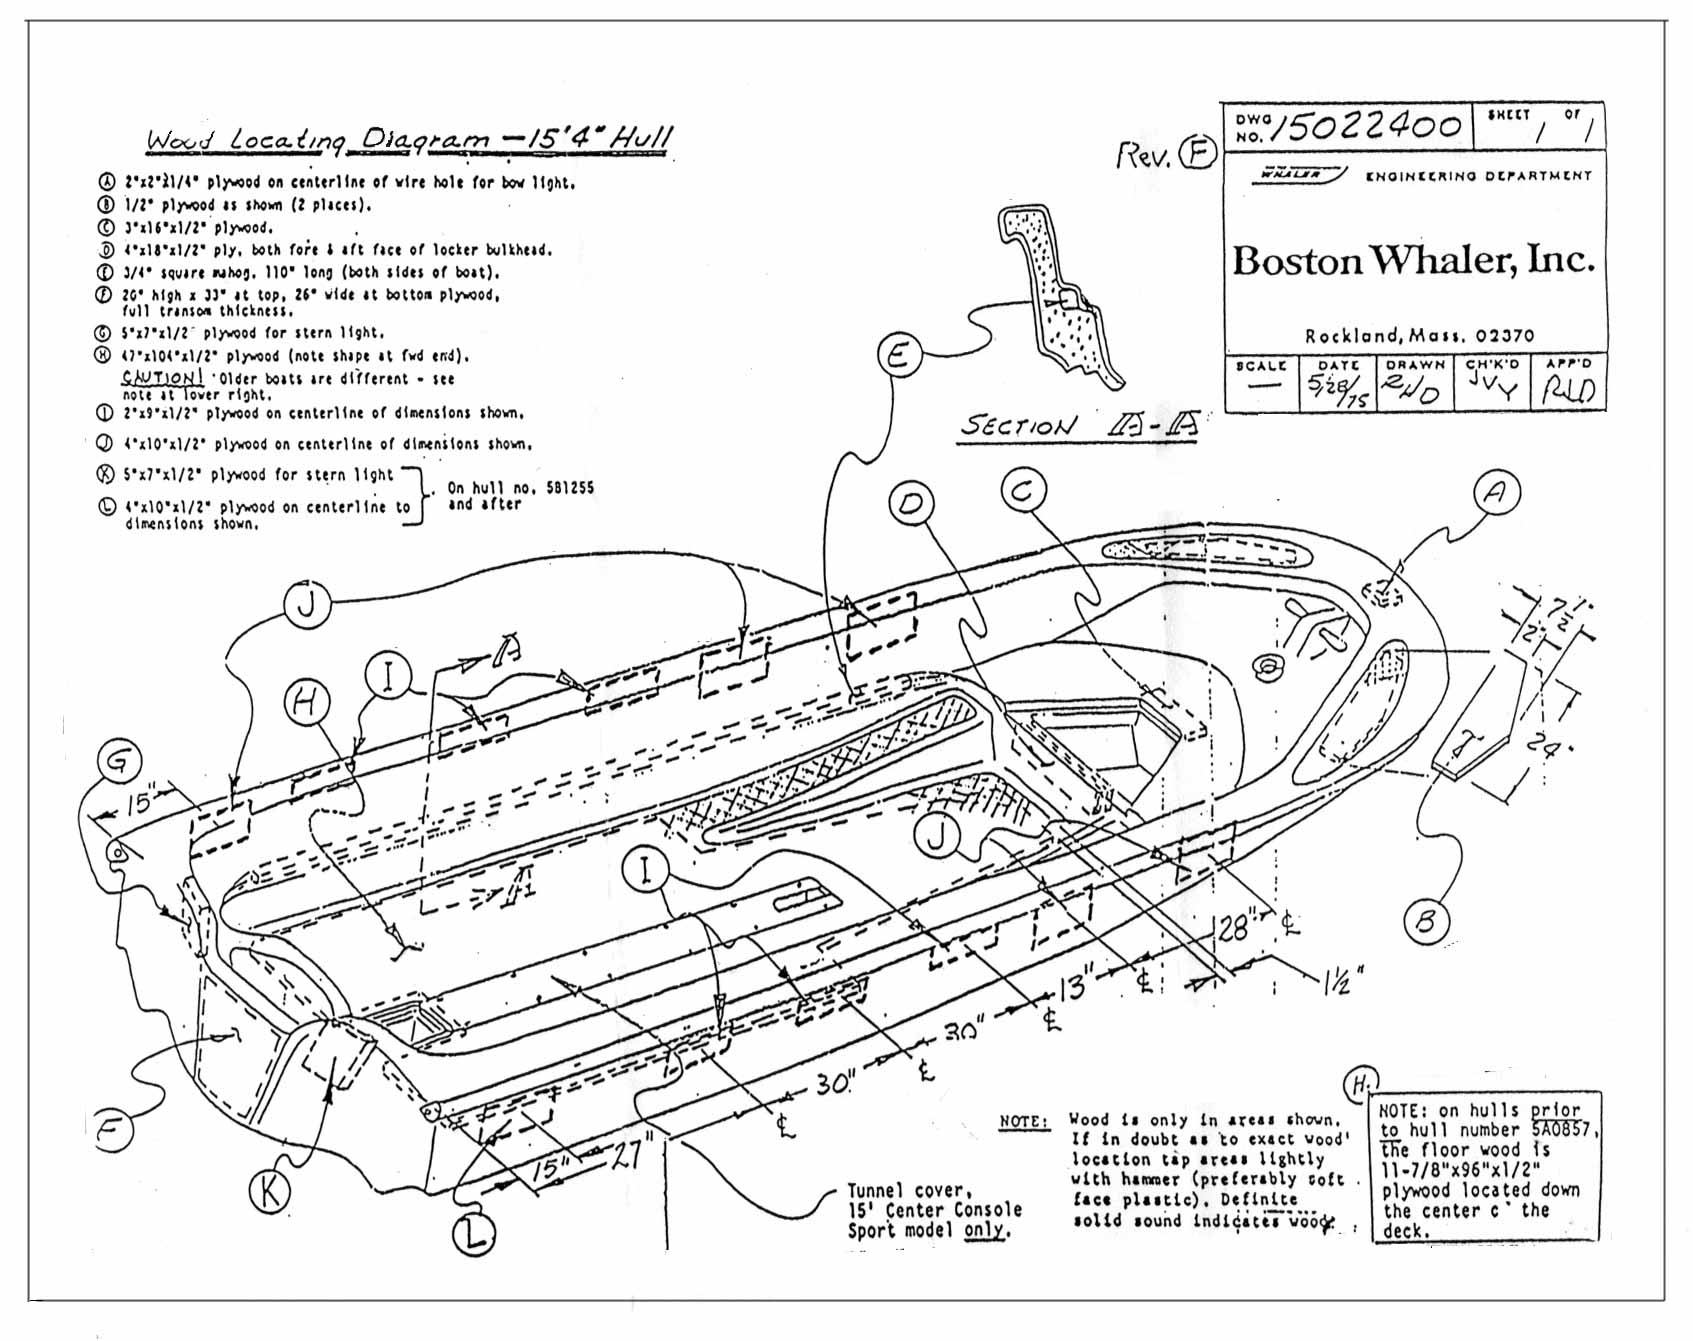 Center Console For Boat Wiring Diagram, Center, Free